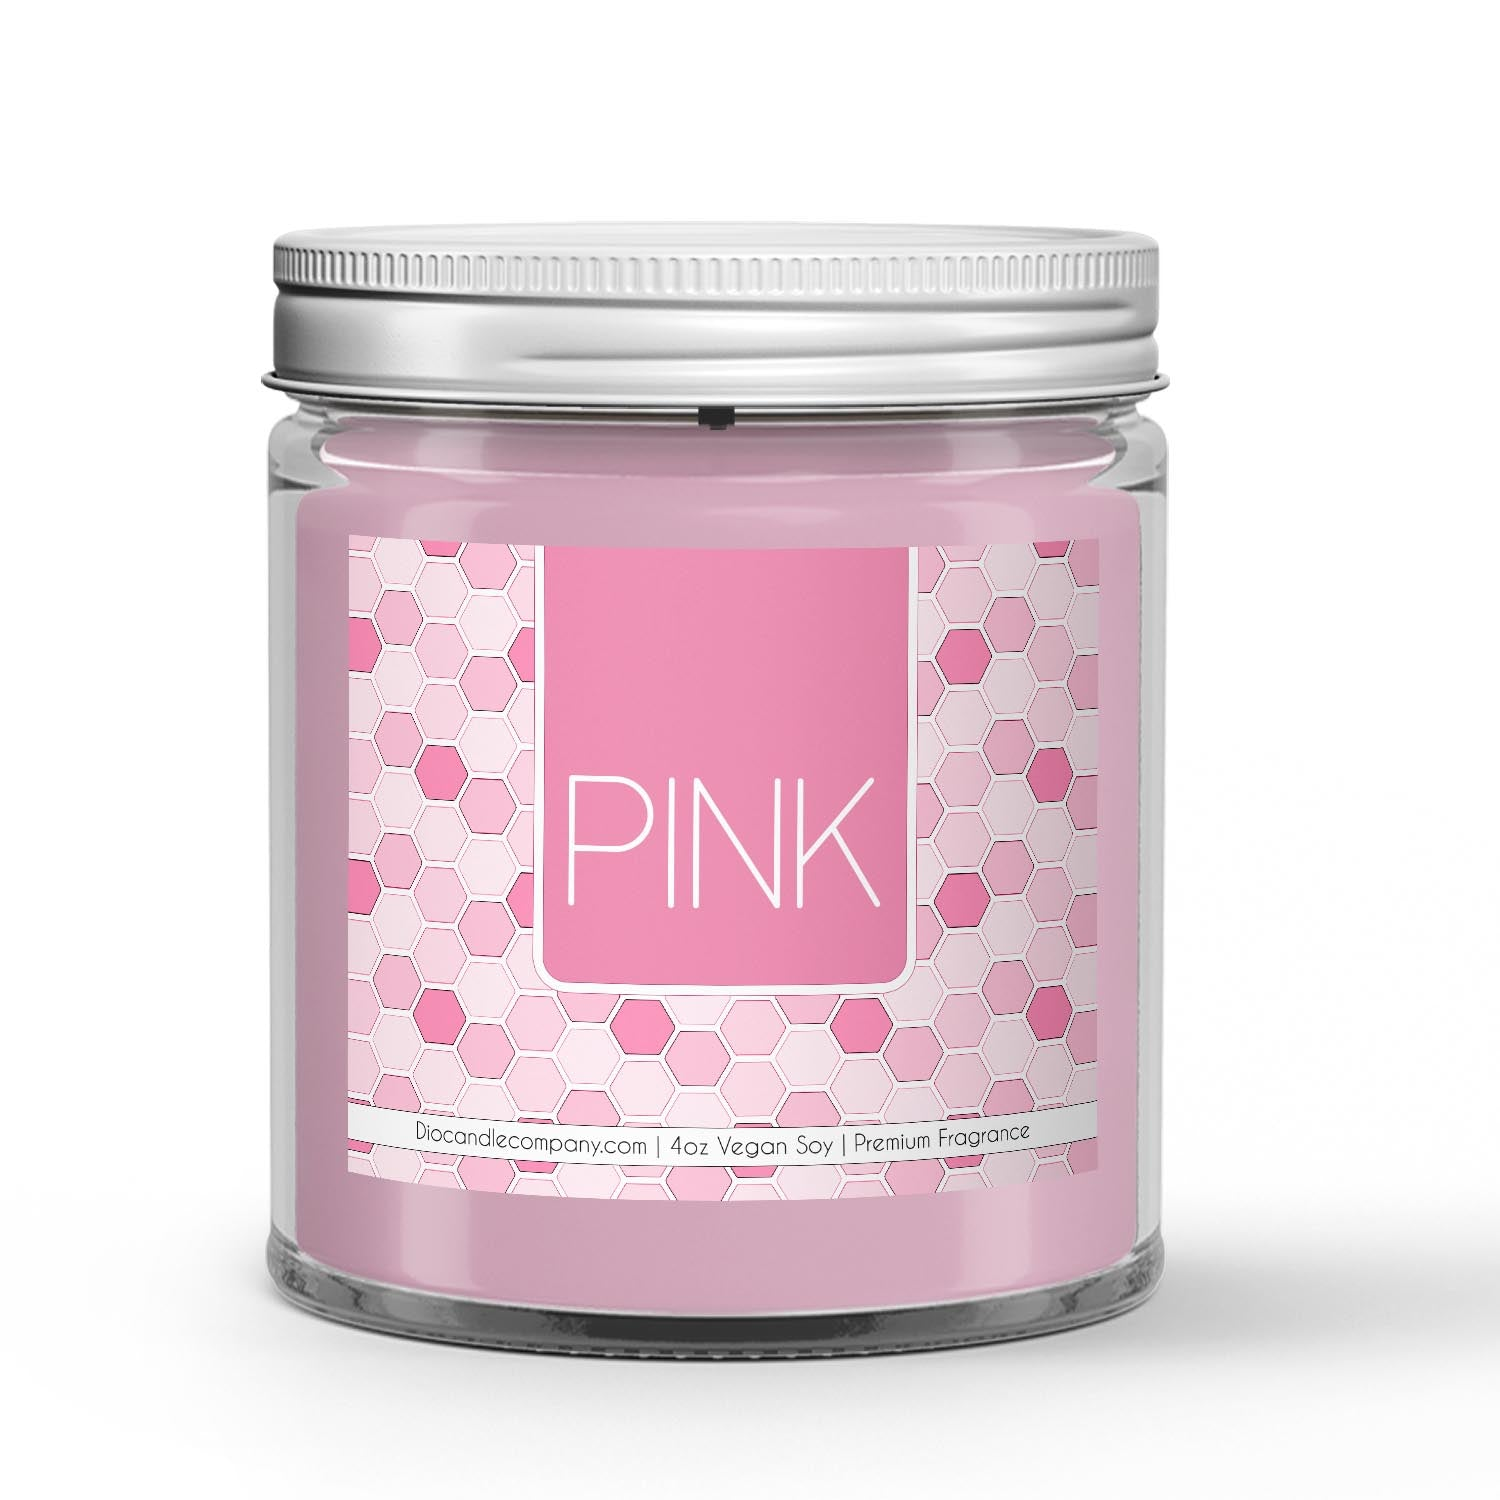 Pink! Candles and Wax Melts